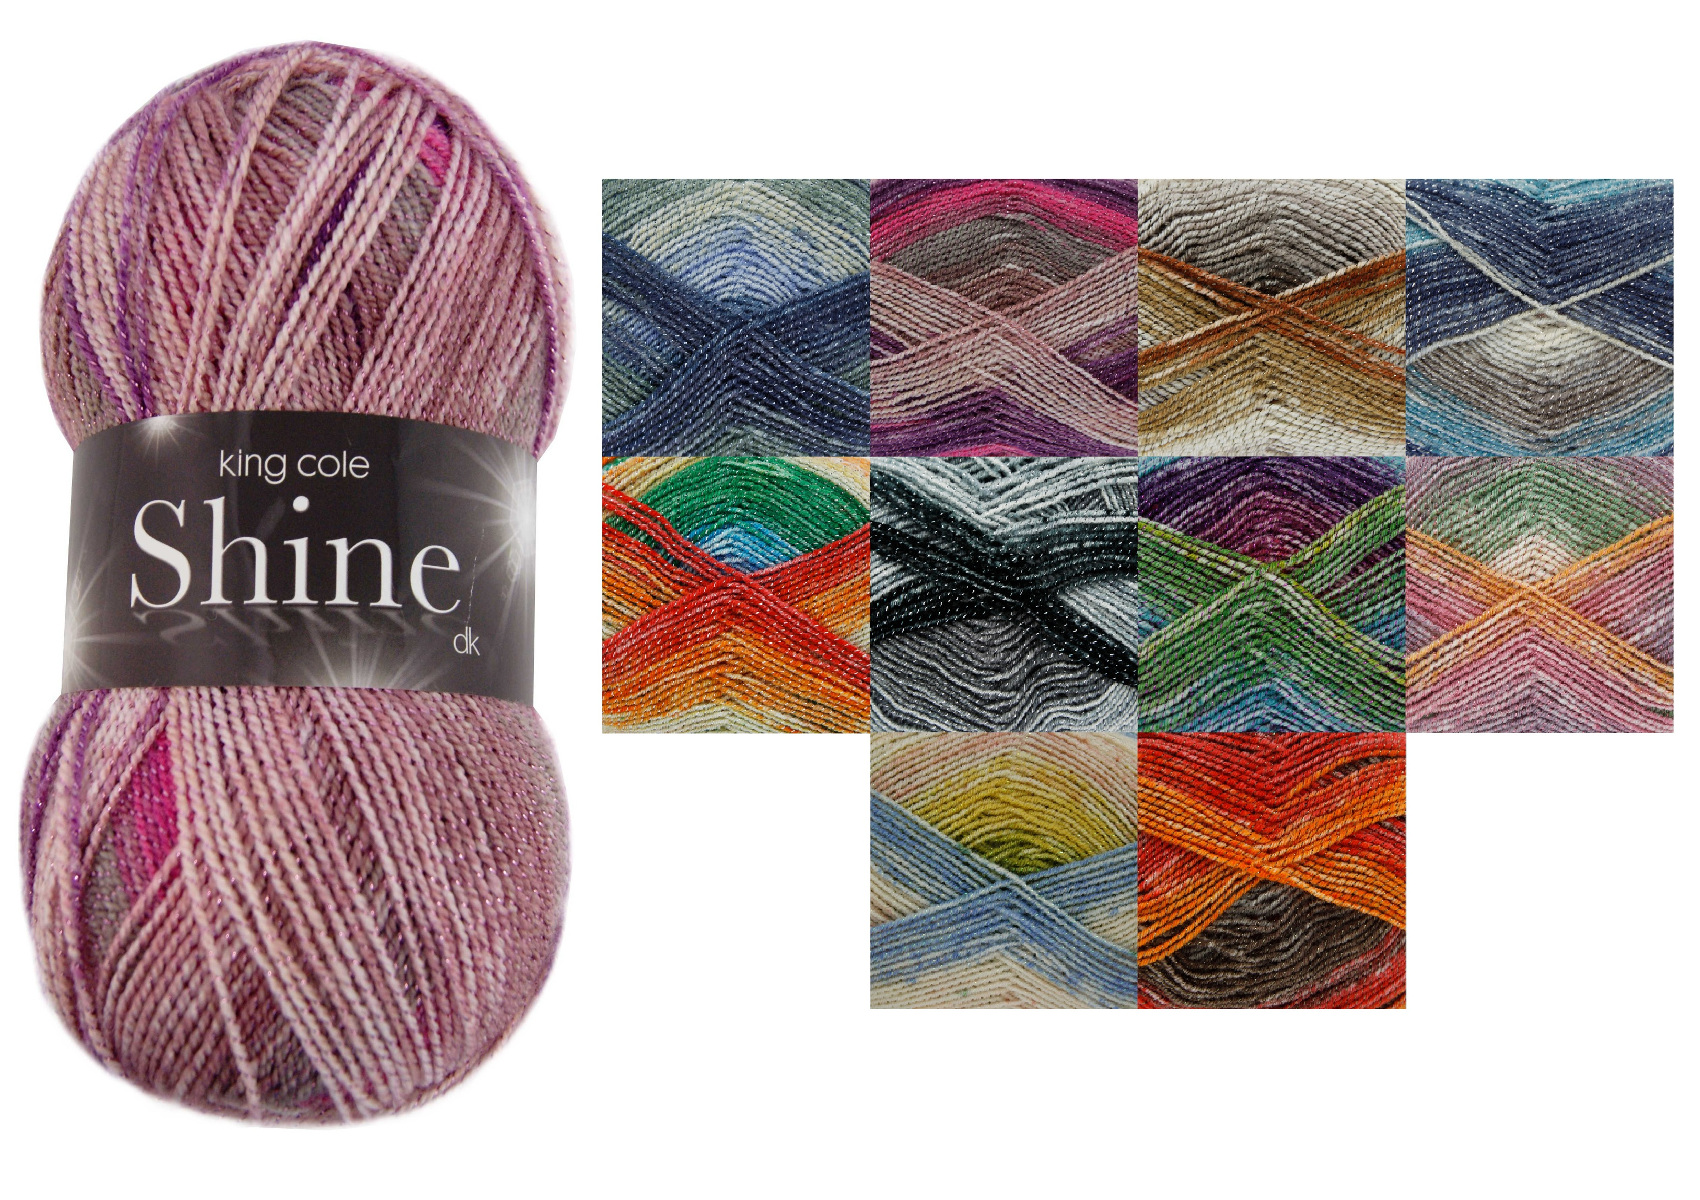 Knitting Patterns For Double Knit Yarn : 100g Ball Shine DK Double Knitting Wool King Cole Acrylic Blend Sparkle Yarn ...